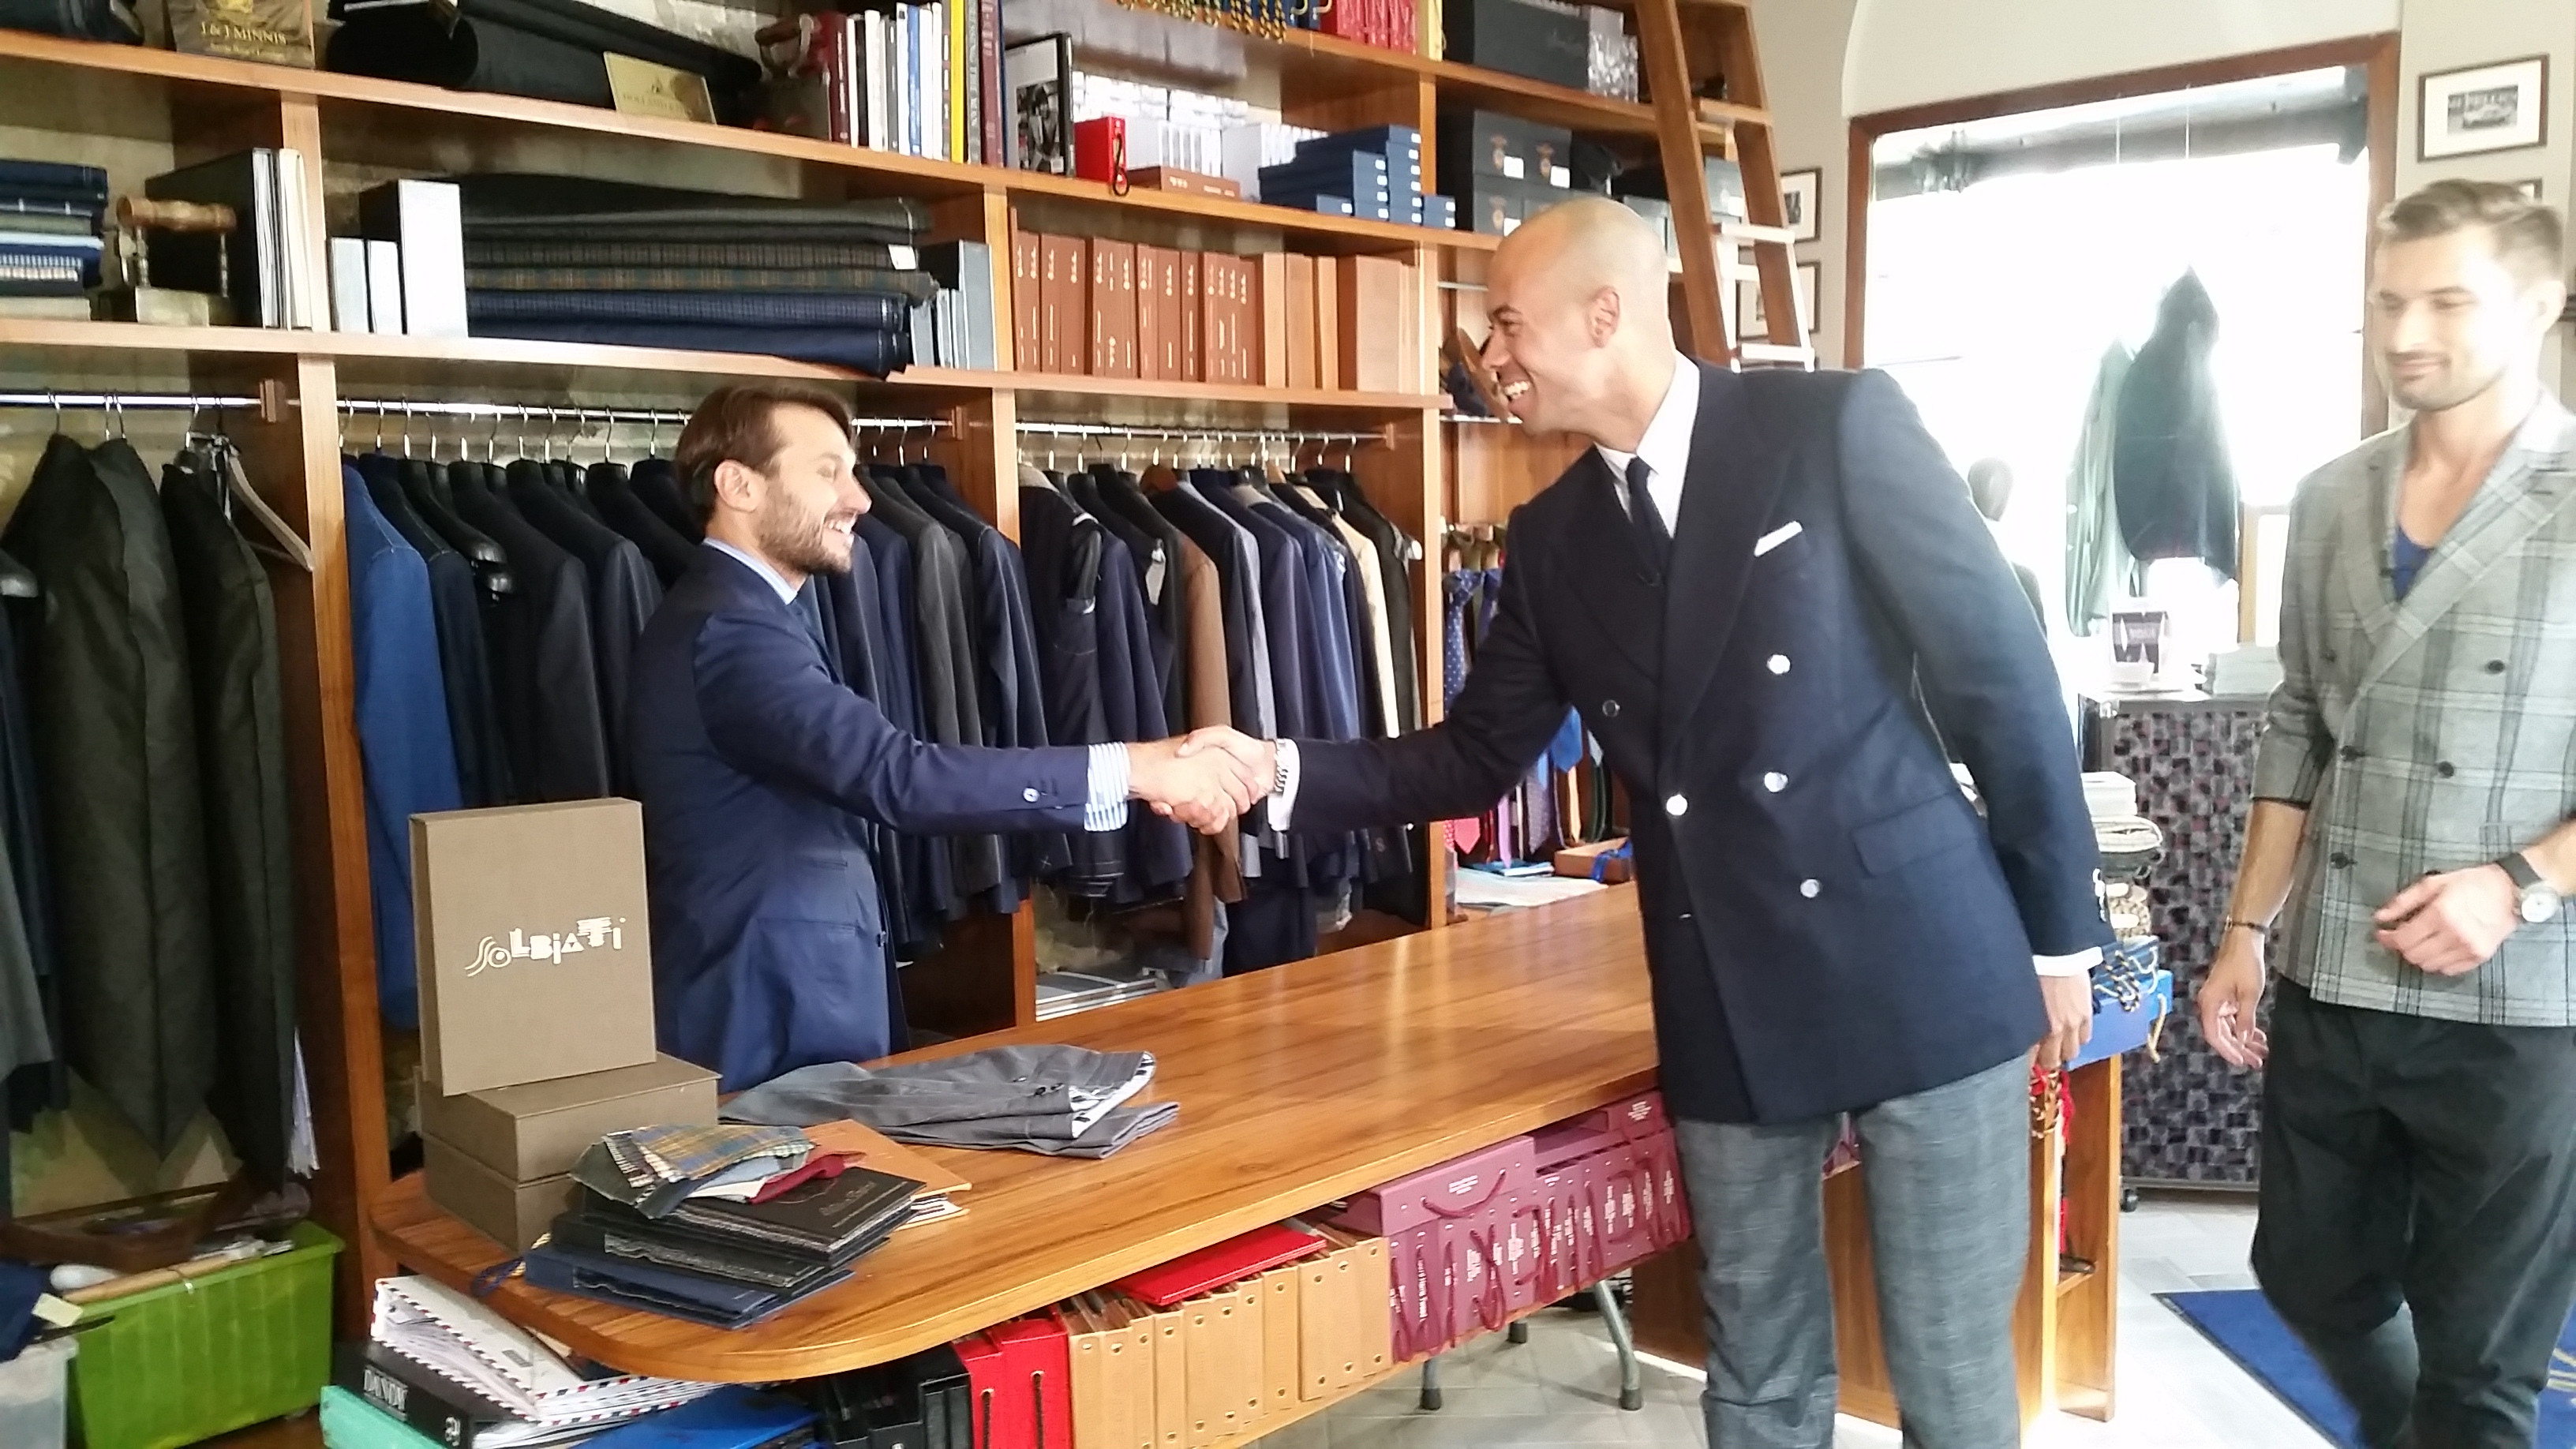 MilanStyle.com founder returns to Warsaw